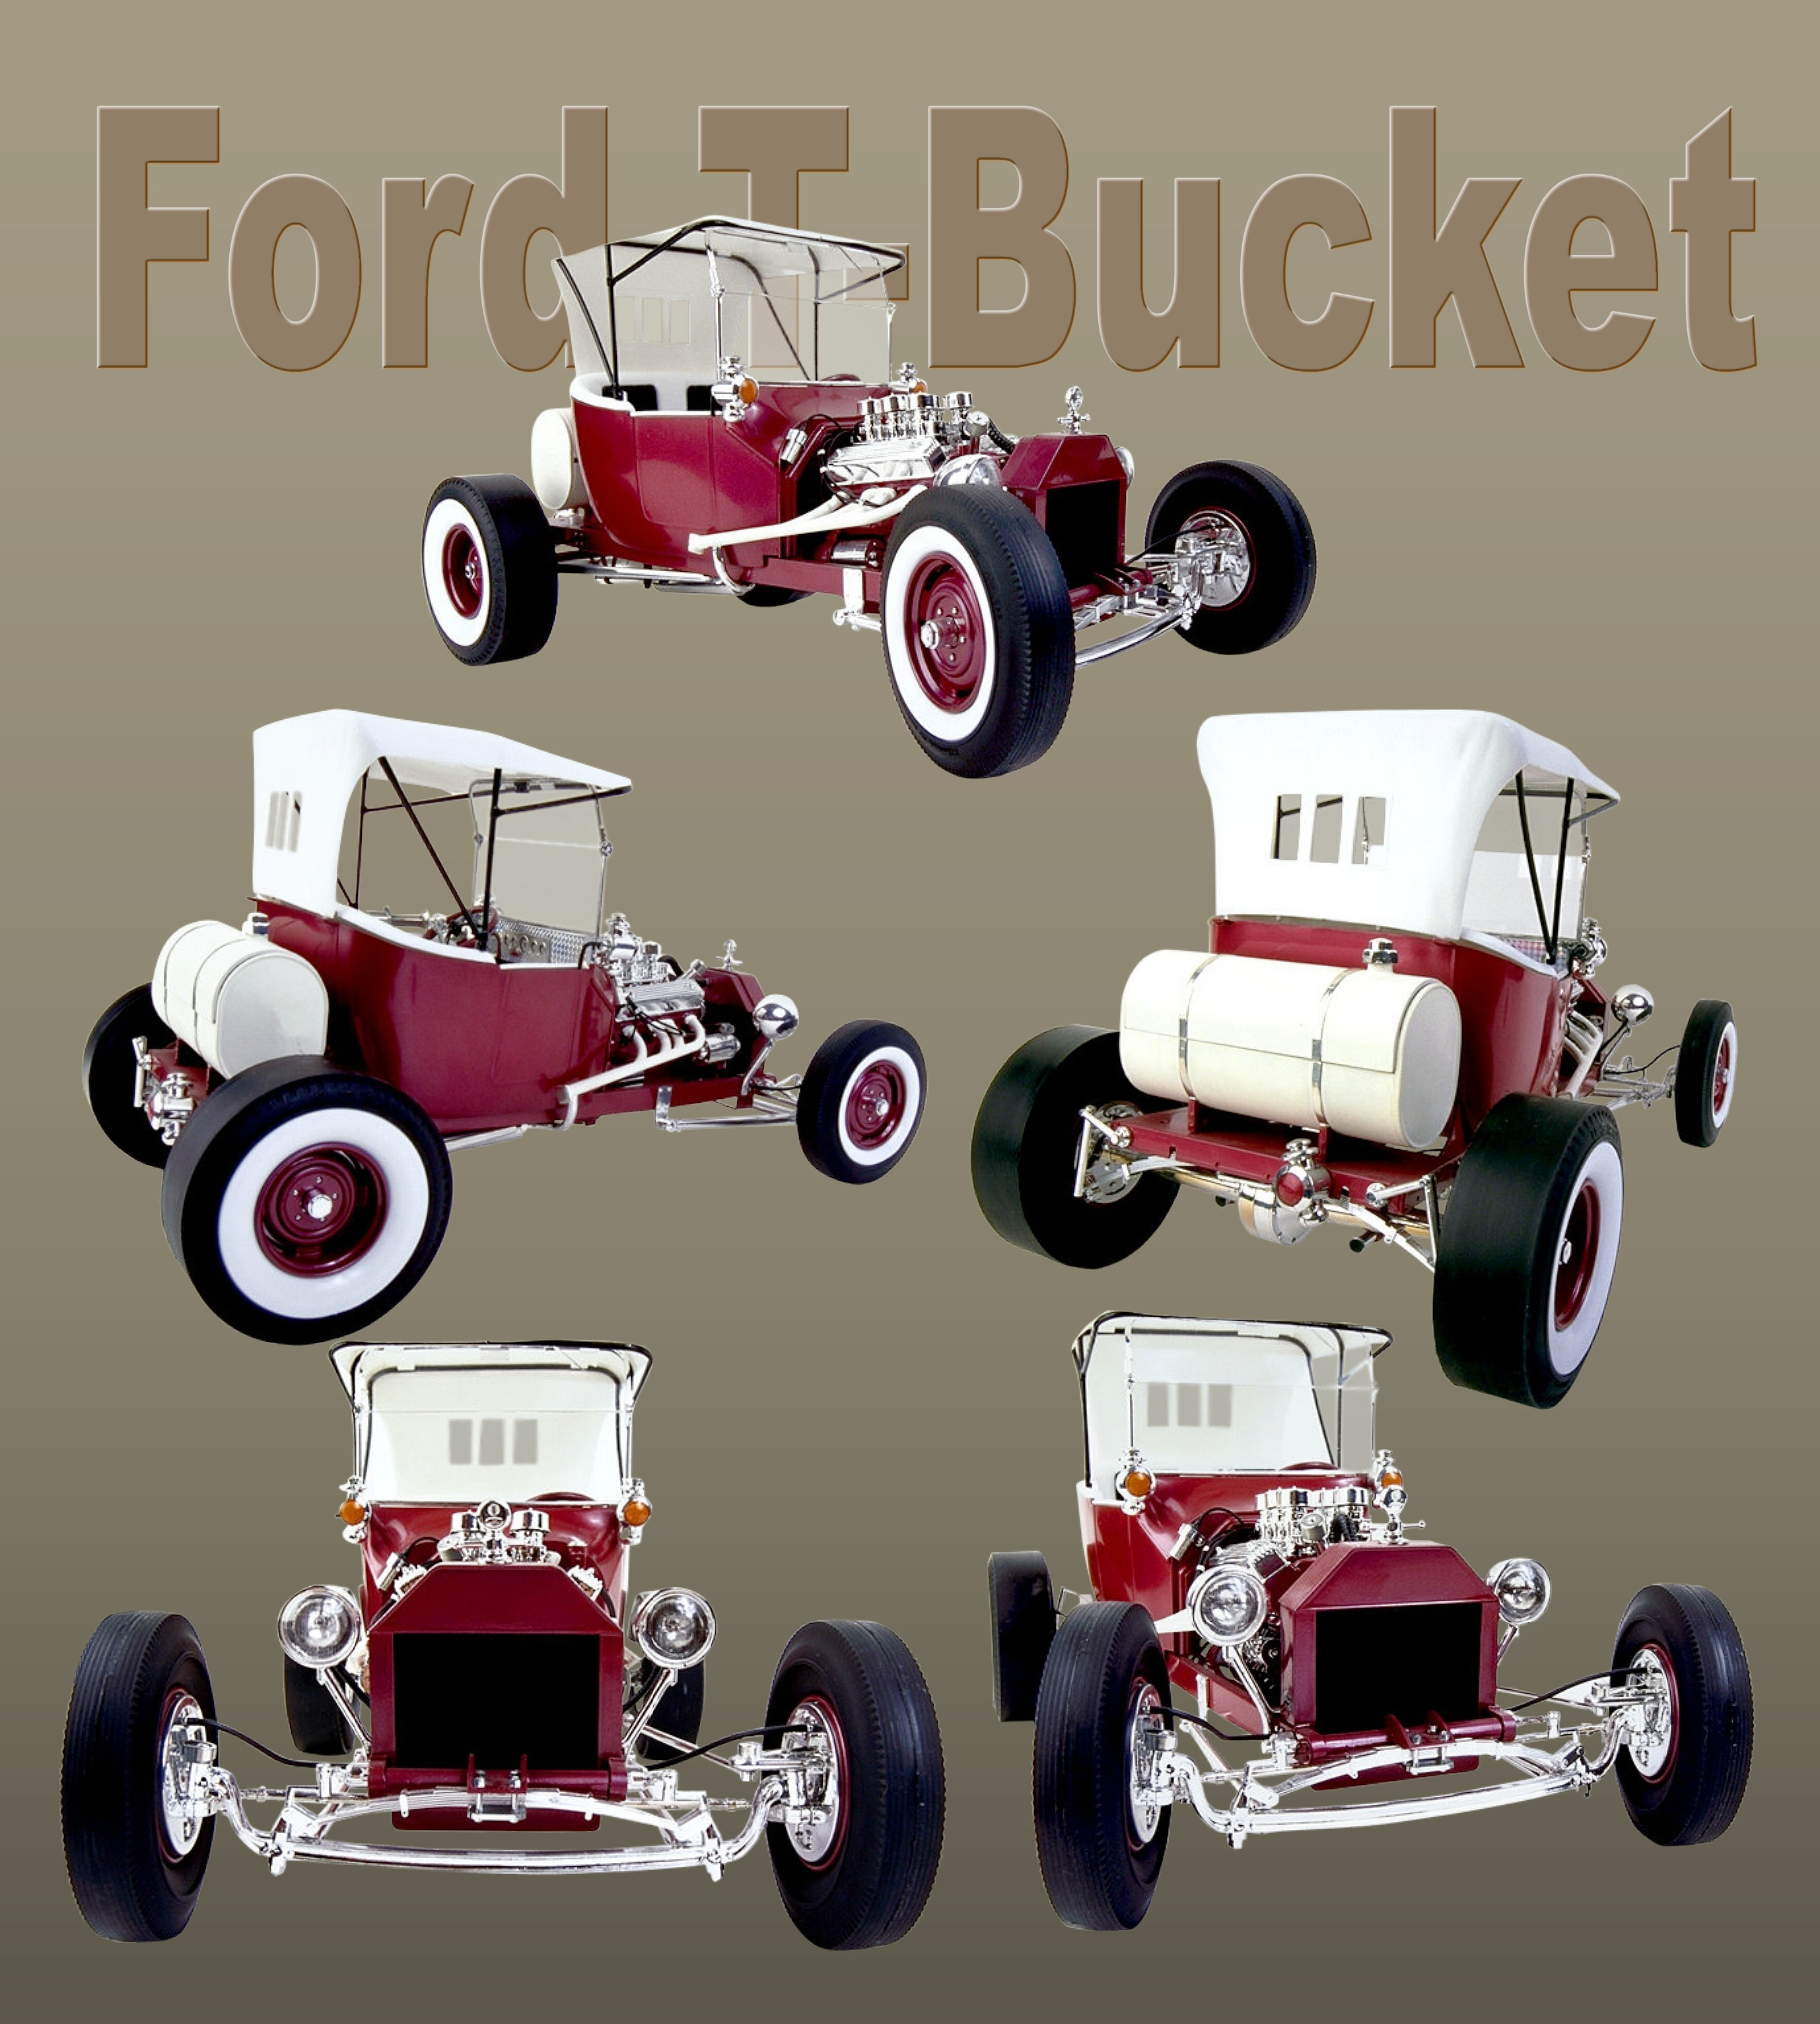 Ford t-bucket photo